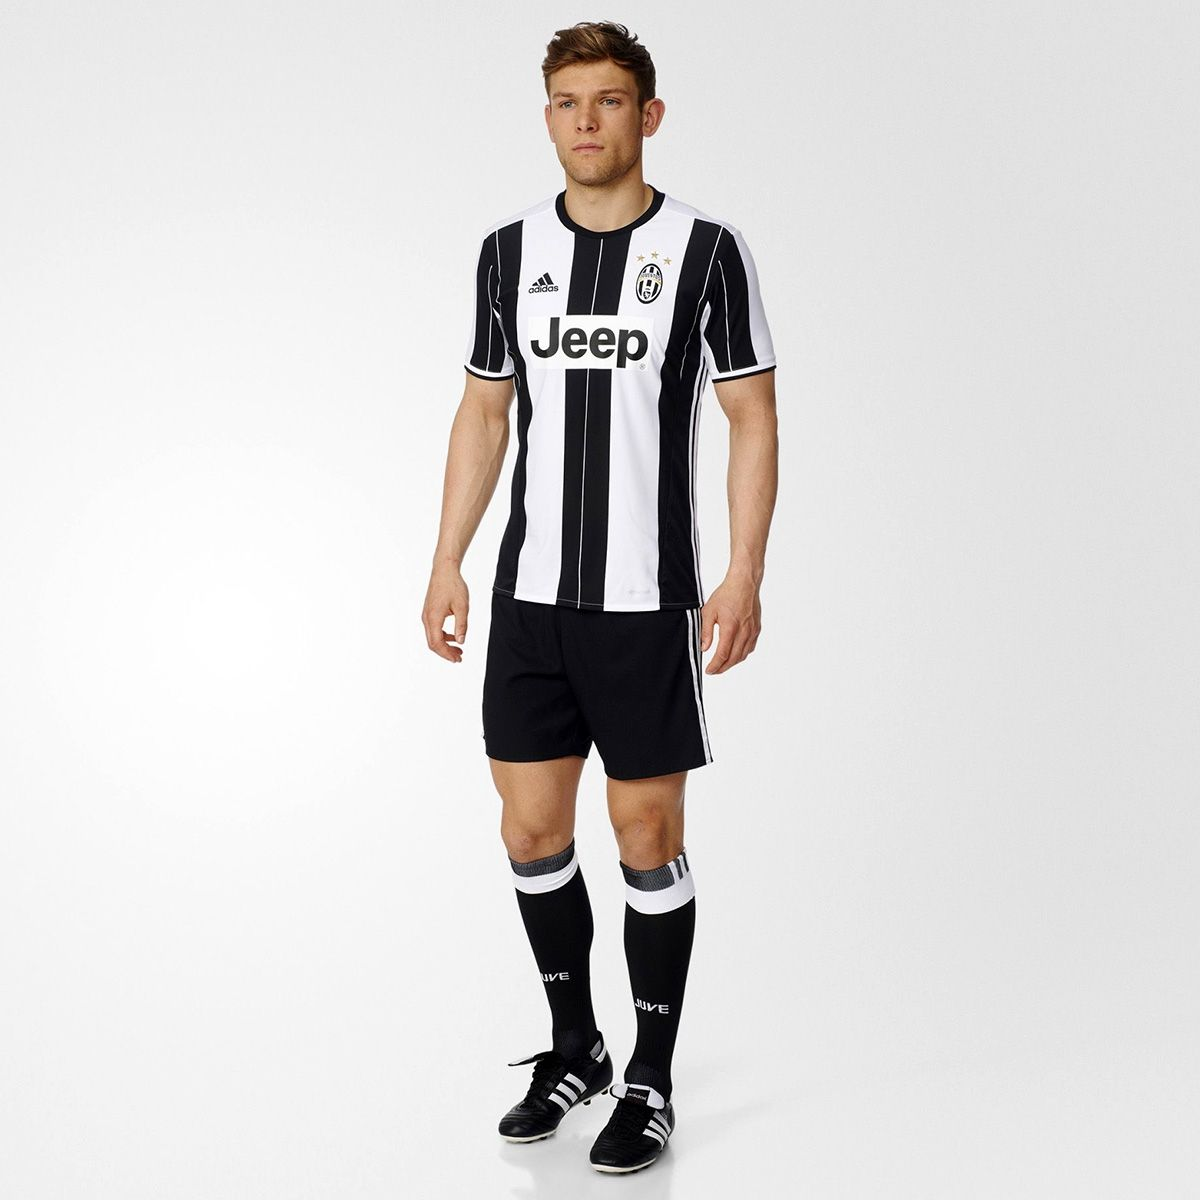 competitive price dbbba 797e3 Type Shirts adidas Juventus FC Home Replica Jersey